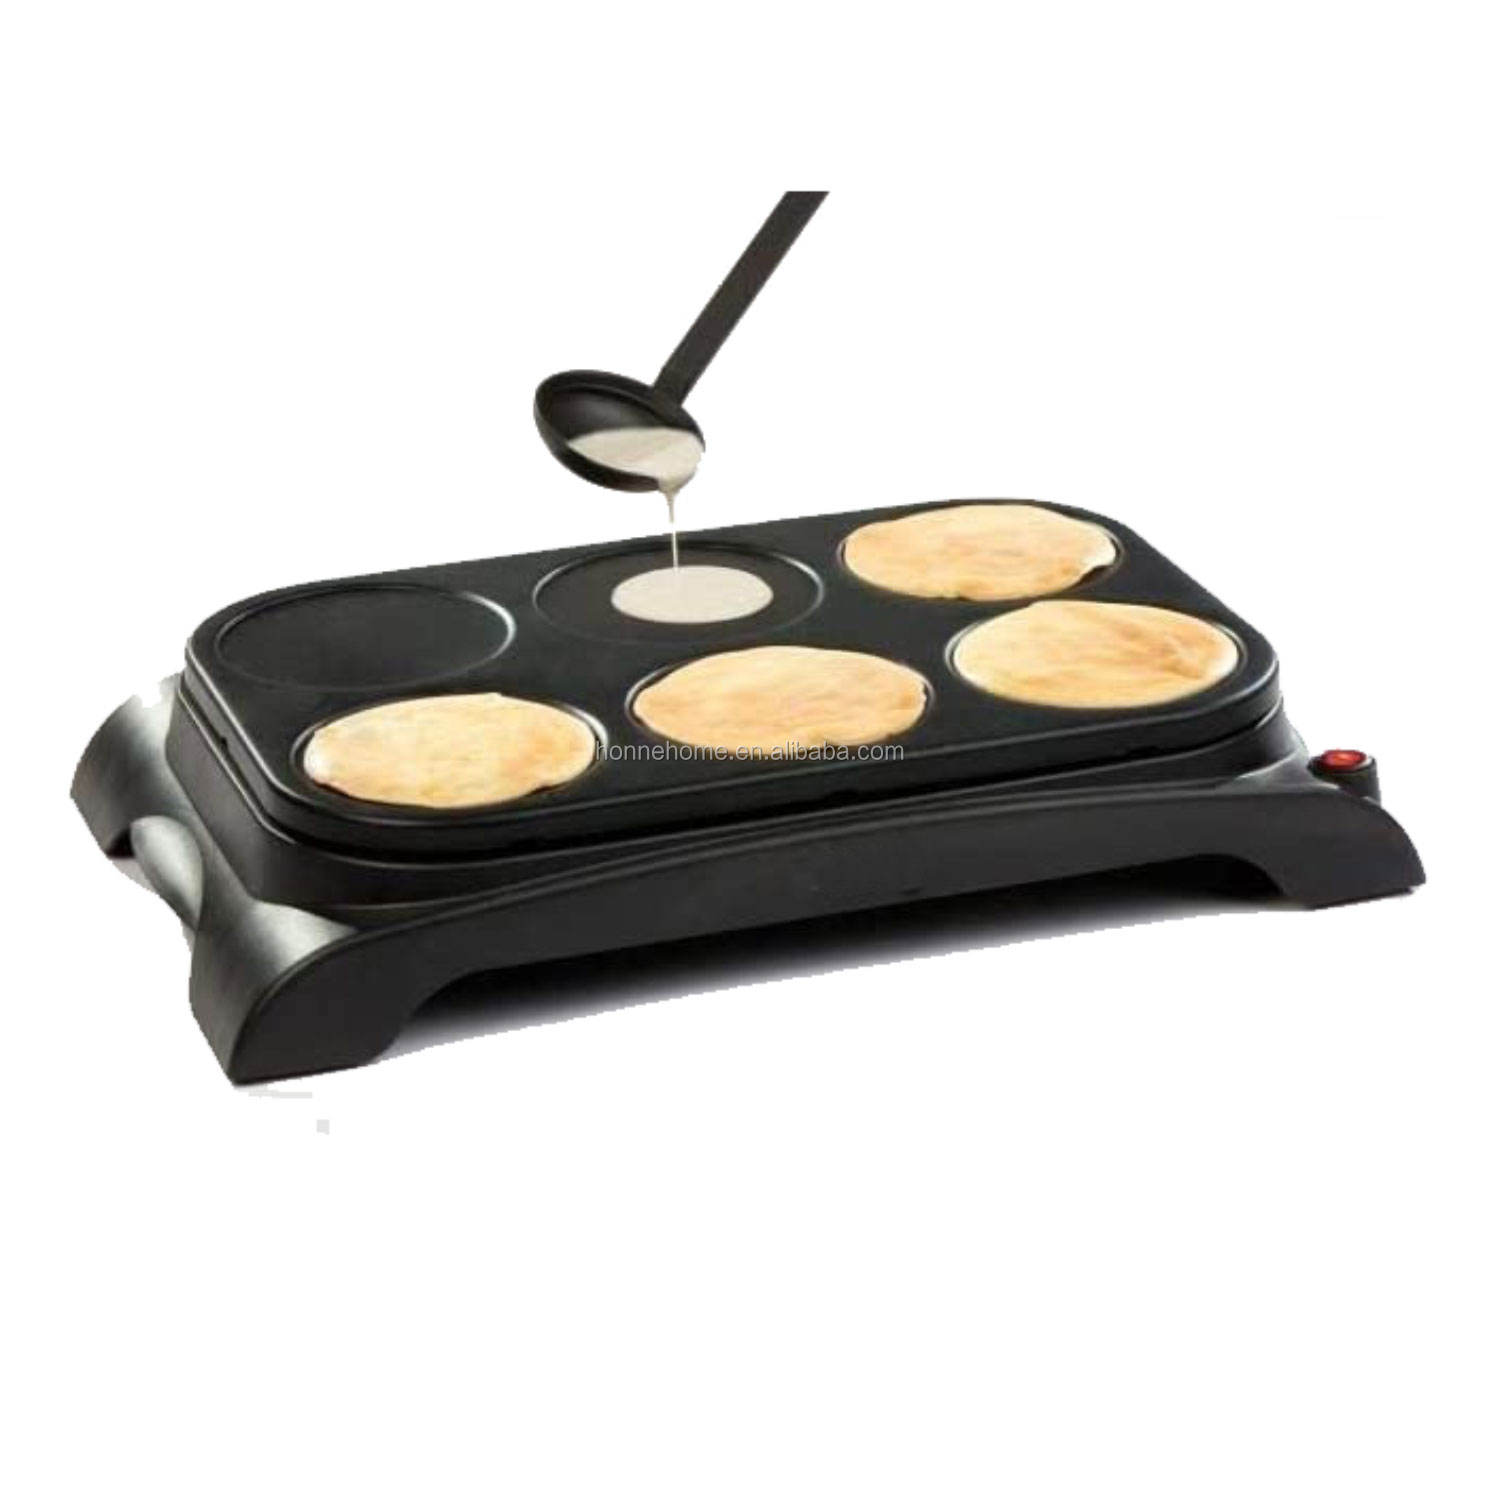 Electric Grill Party Wok Crepe Party Crepes And Pancakes Cooker Crepe Makers